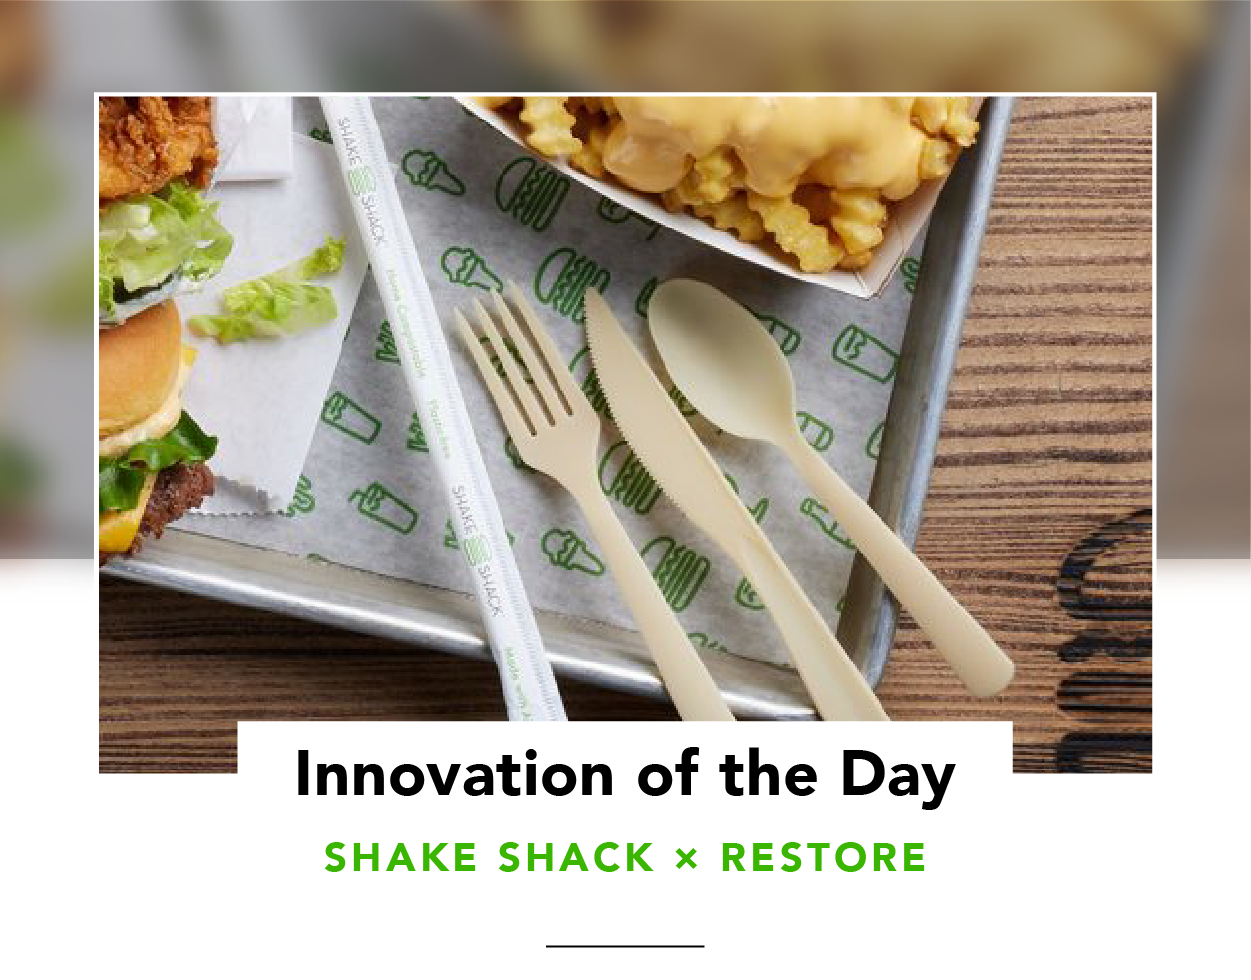 Food plus single-use cutlery and a straw, on a Shake Shack tray